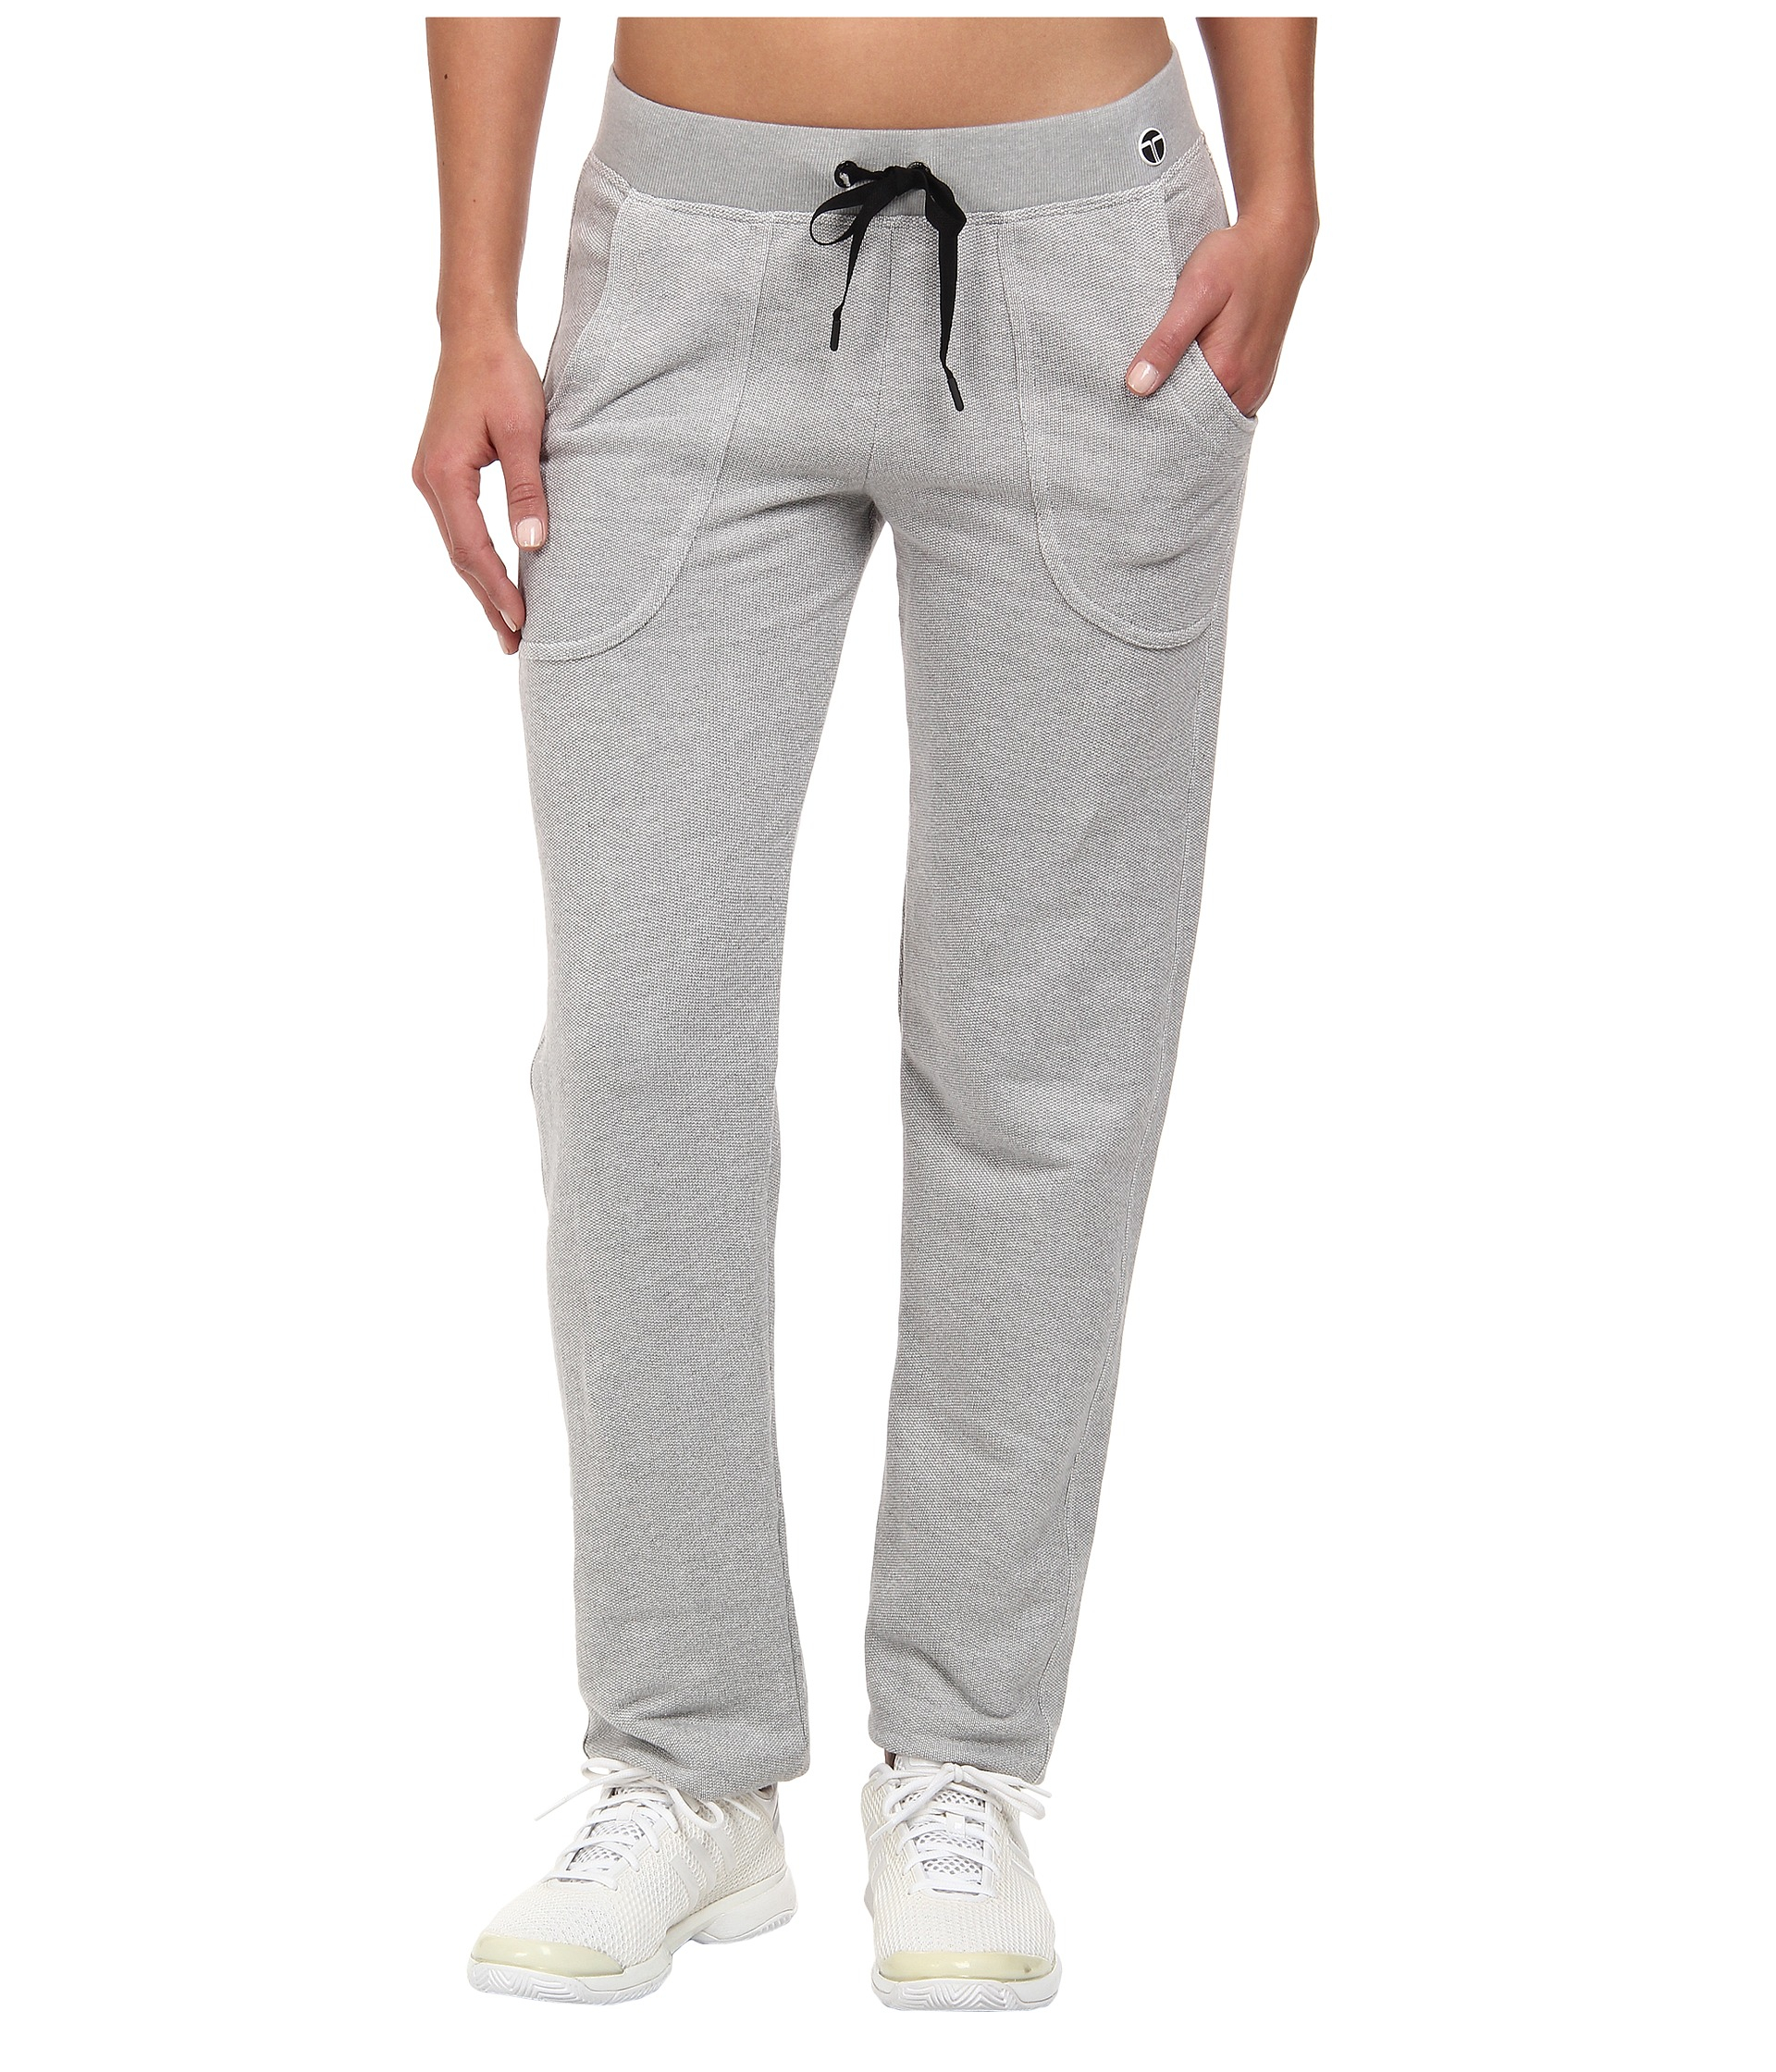 Trina Turk Womens French Terry Straight Leg Pantf Grey - Pants